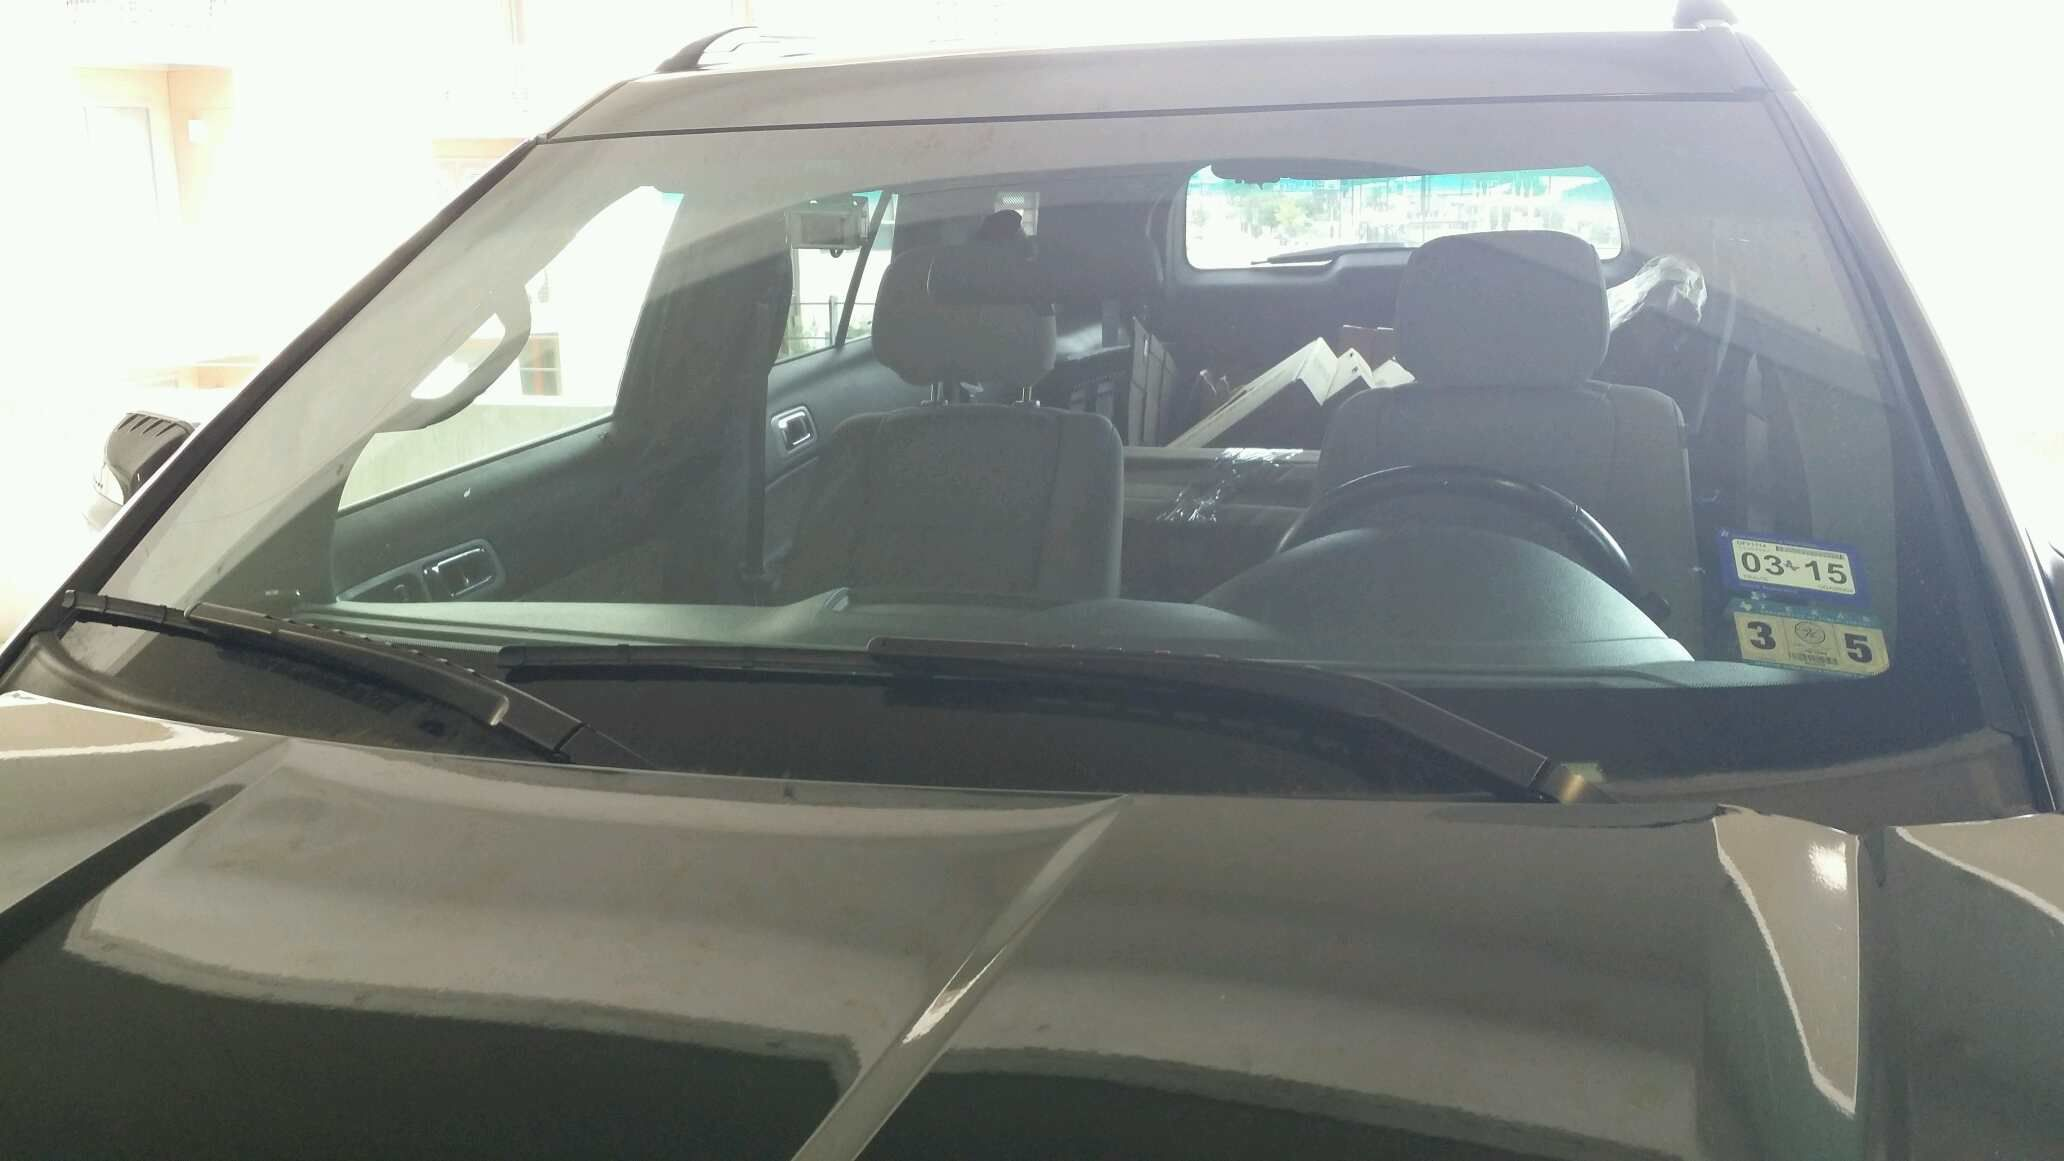 2012 Ford Escape Windshield Replacement Cost